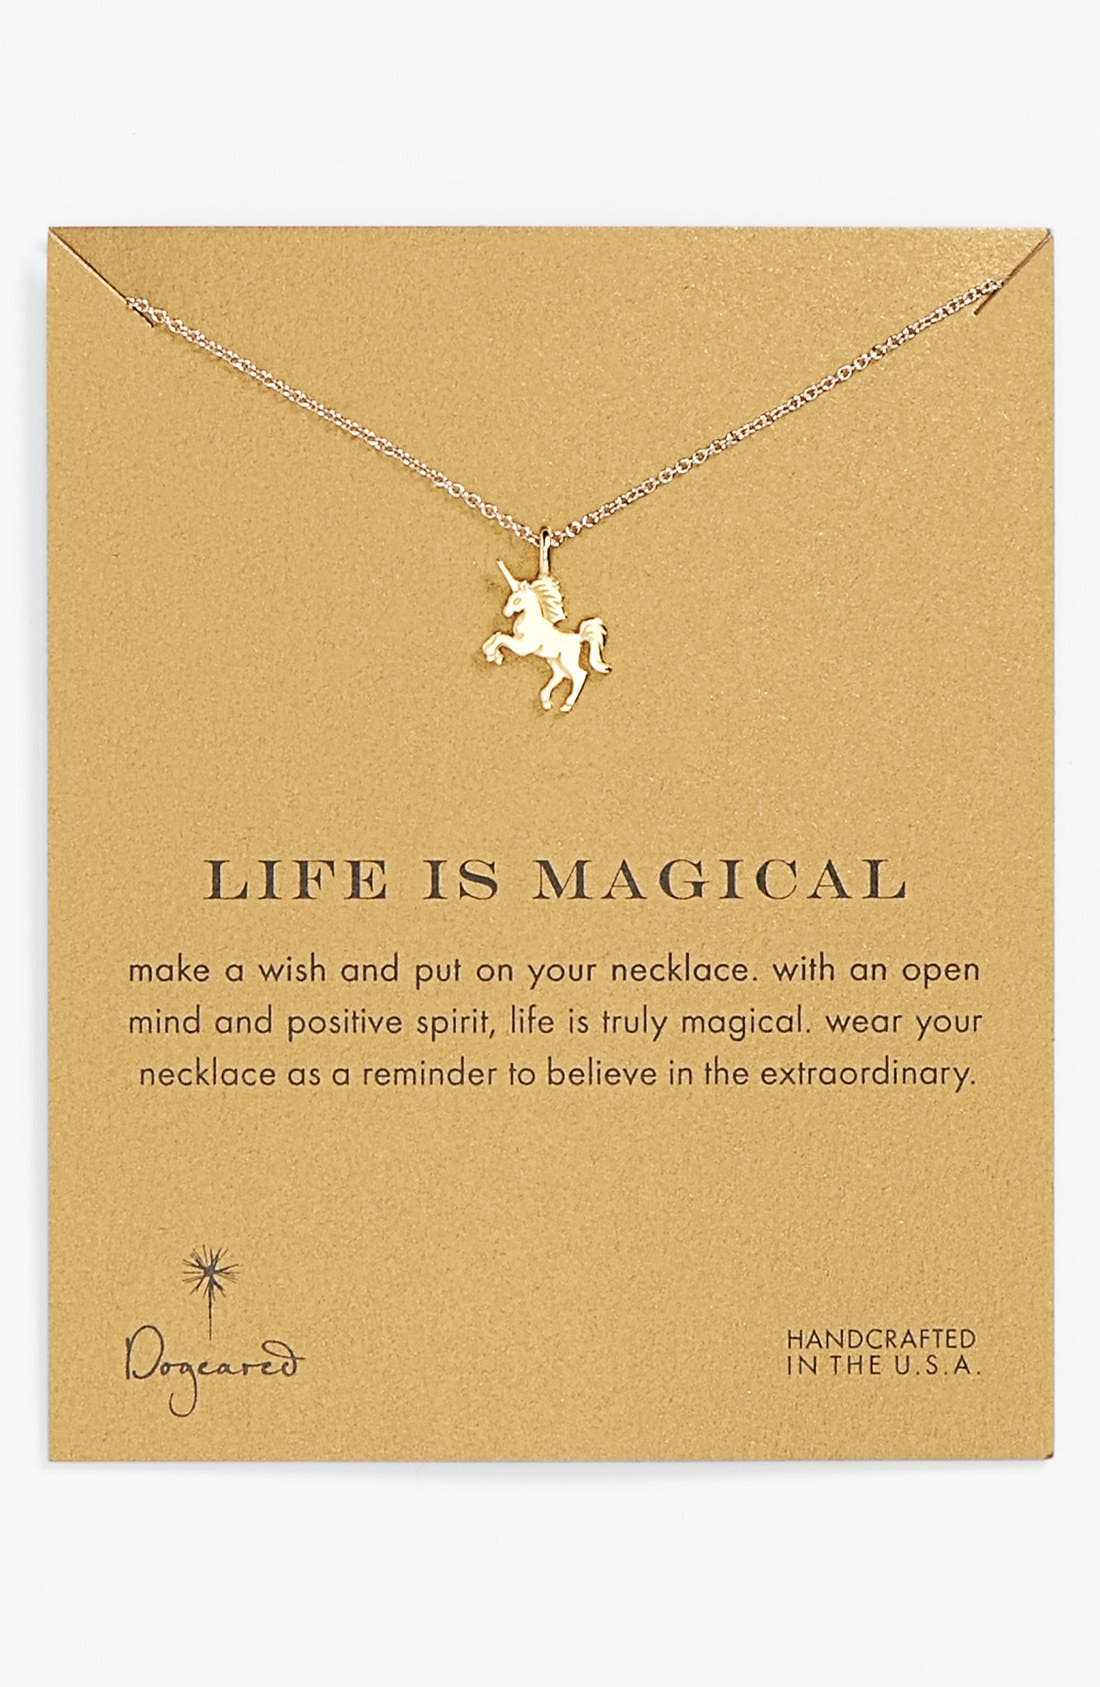 Alternate Image 1 Selected - Dogeared 'Reminder - Life is Magical' Boxed Unicorn Pendant Necklace